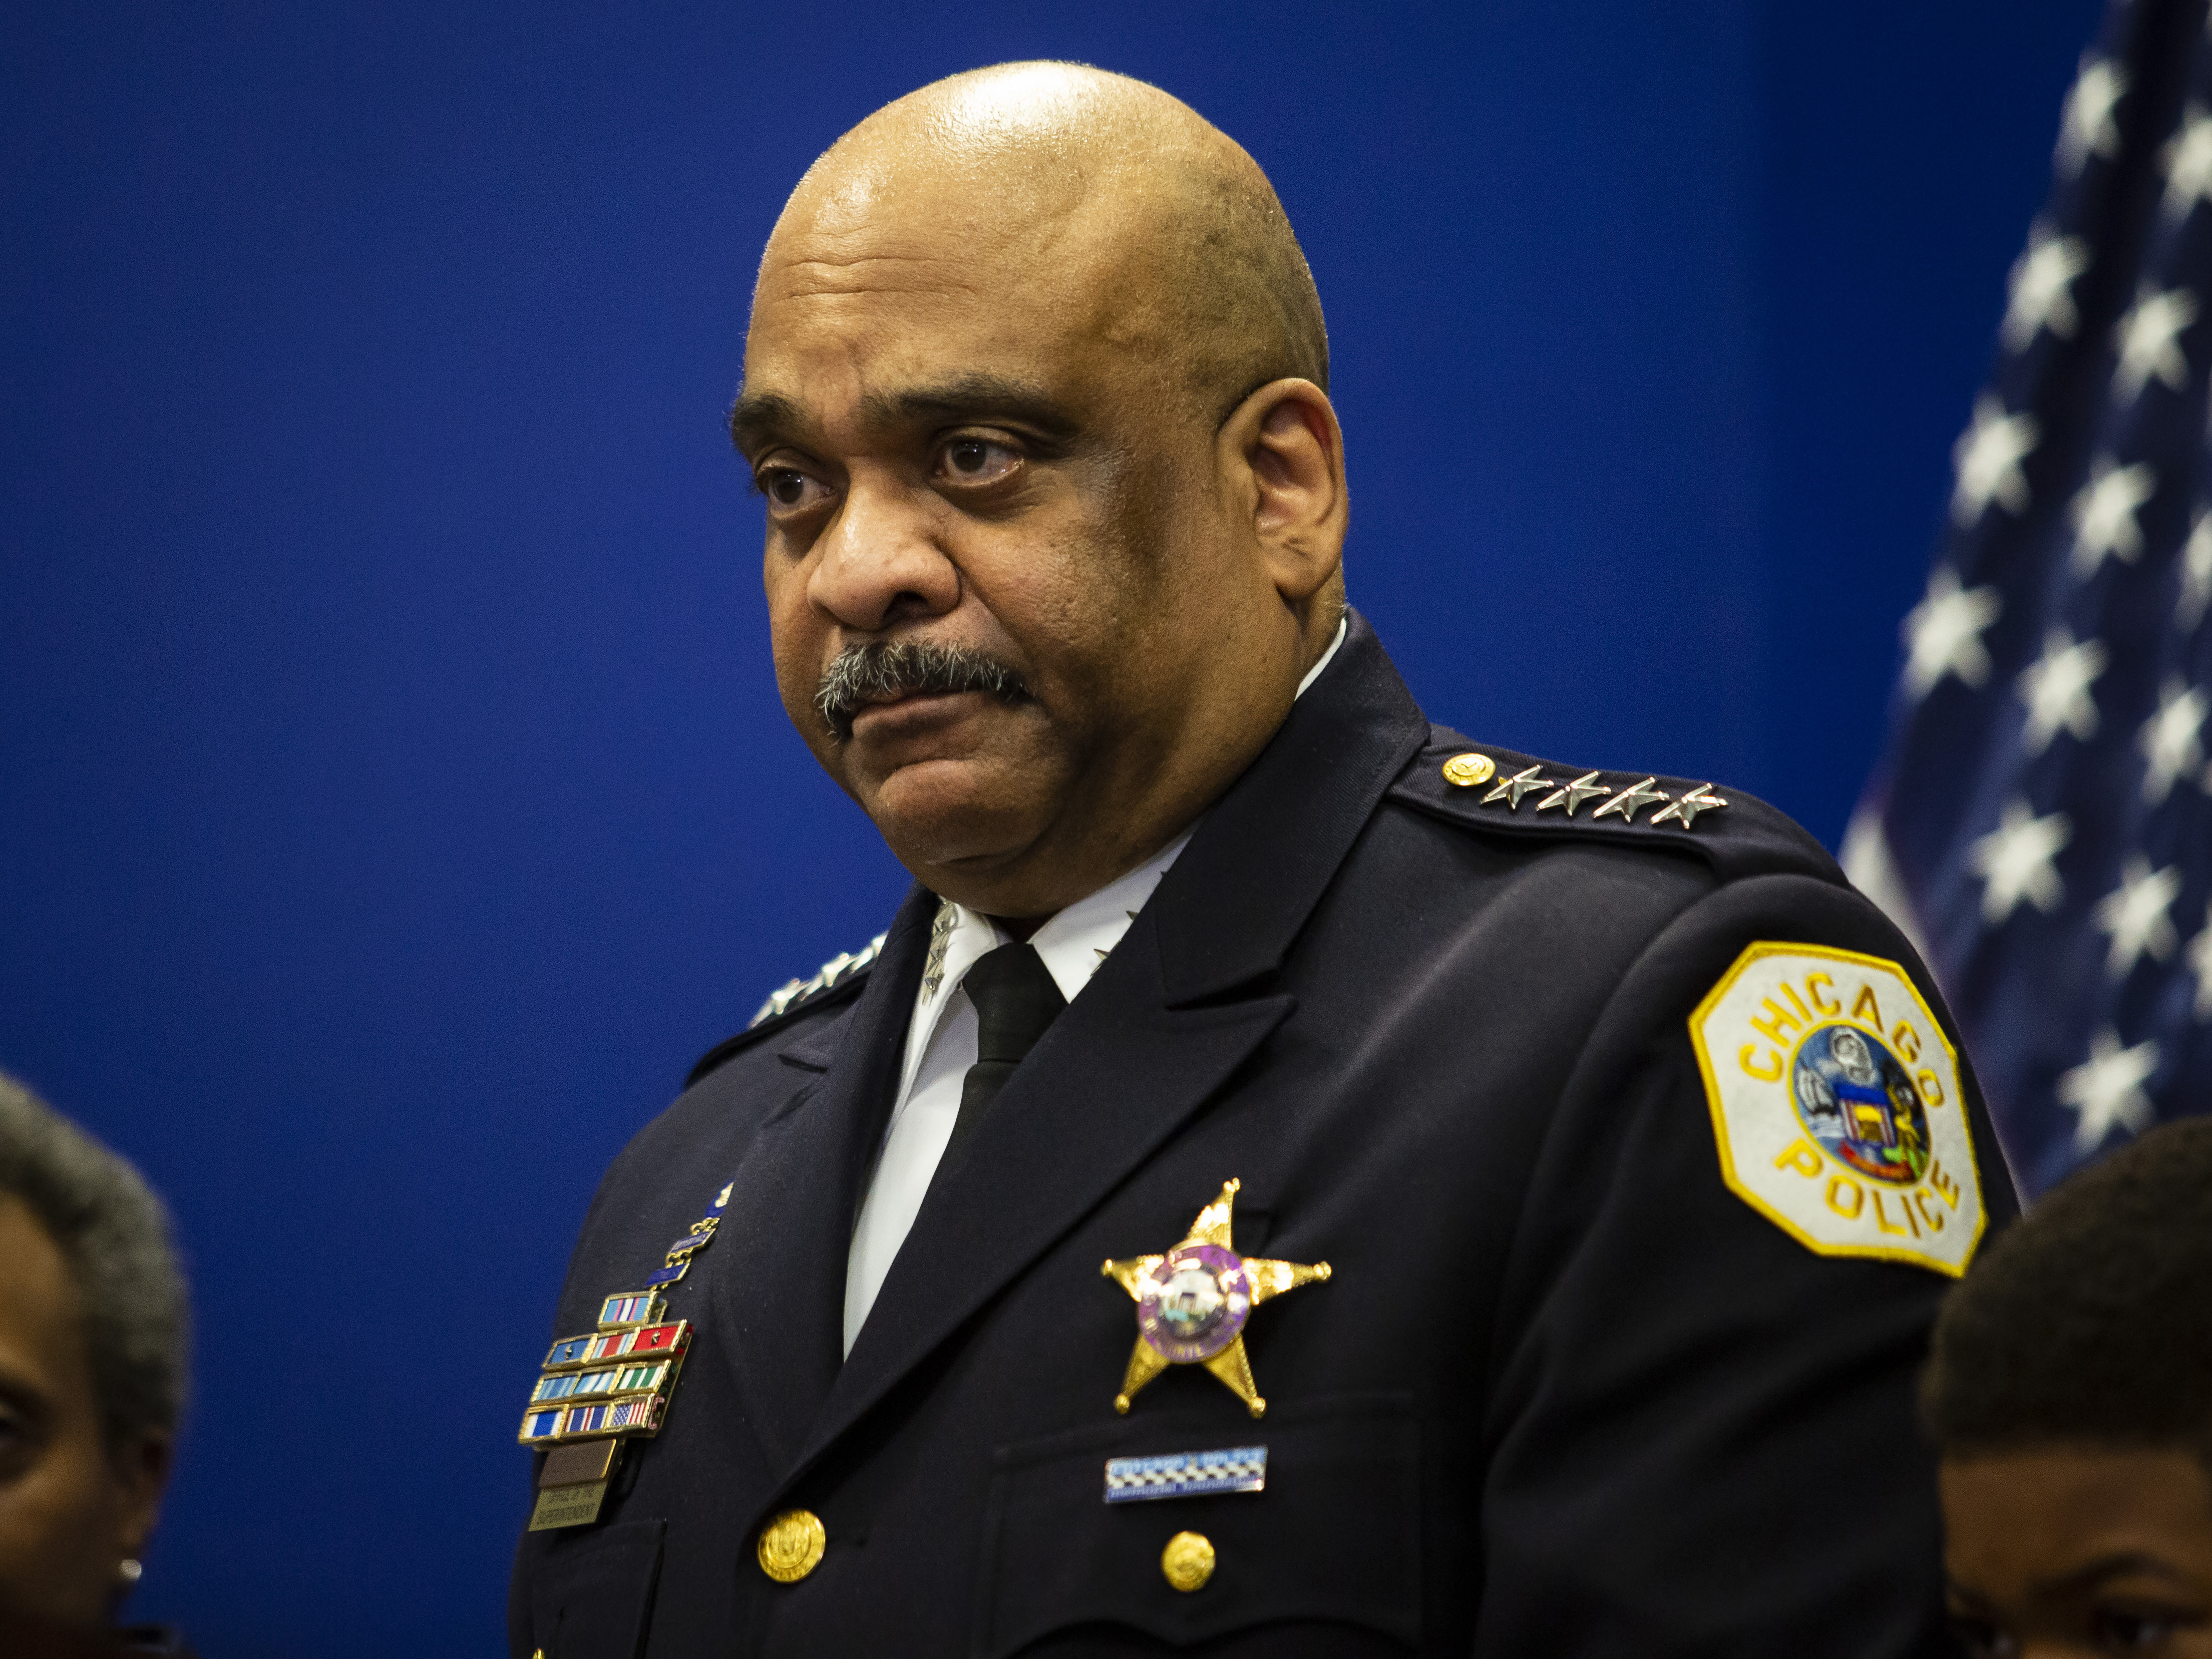 Chicago Police Department Supt. Eddie Johnson gets emotional as he announces his retirement during a press conference at CPD headquarters, Thursday morning.